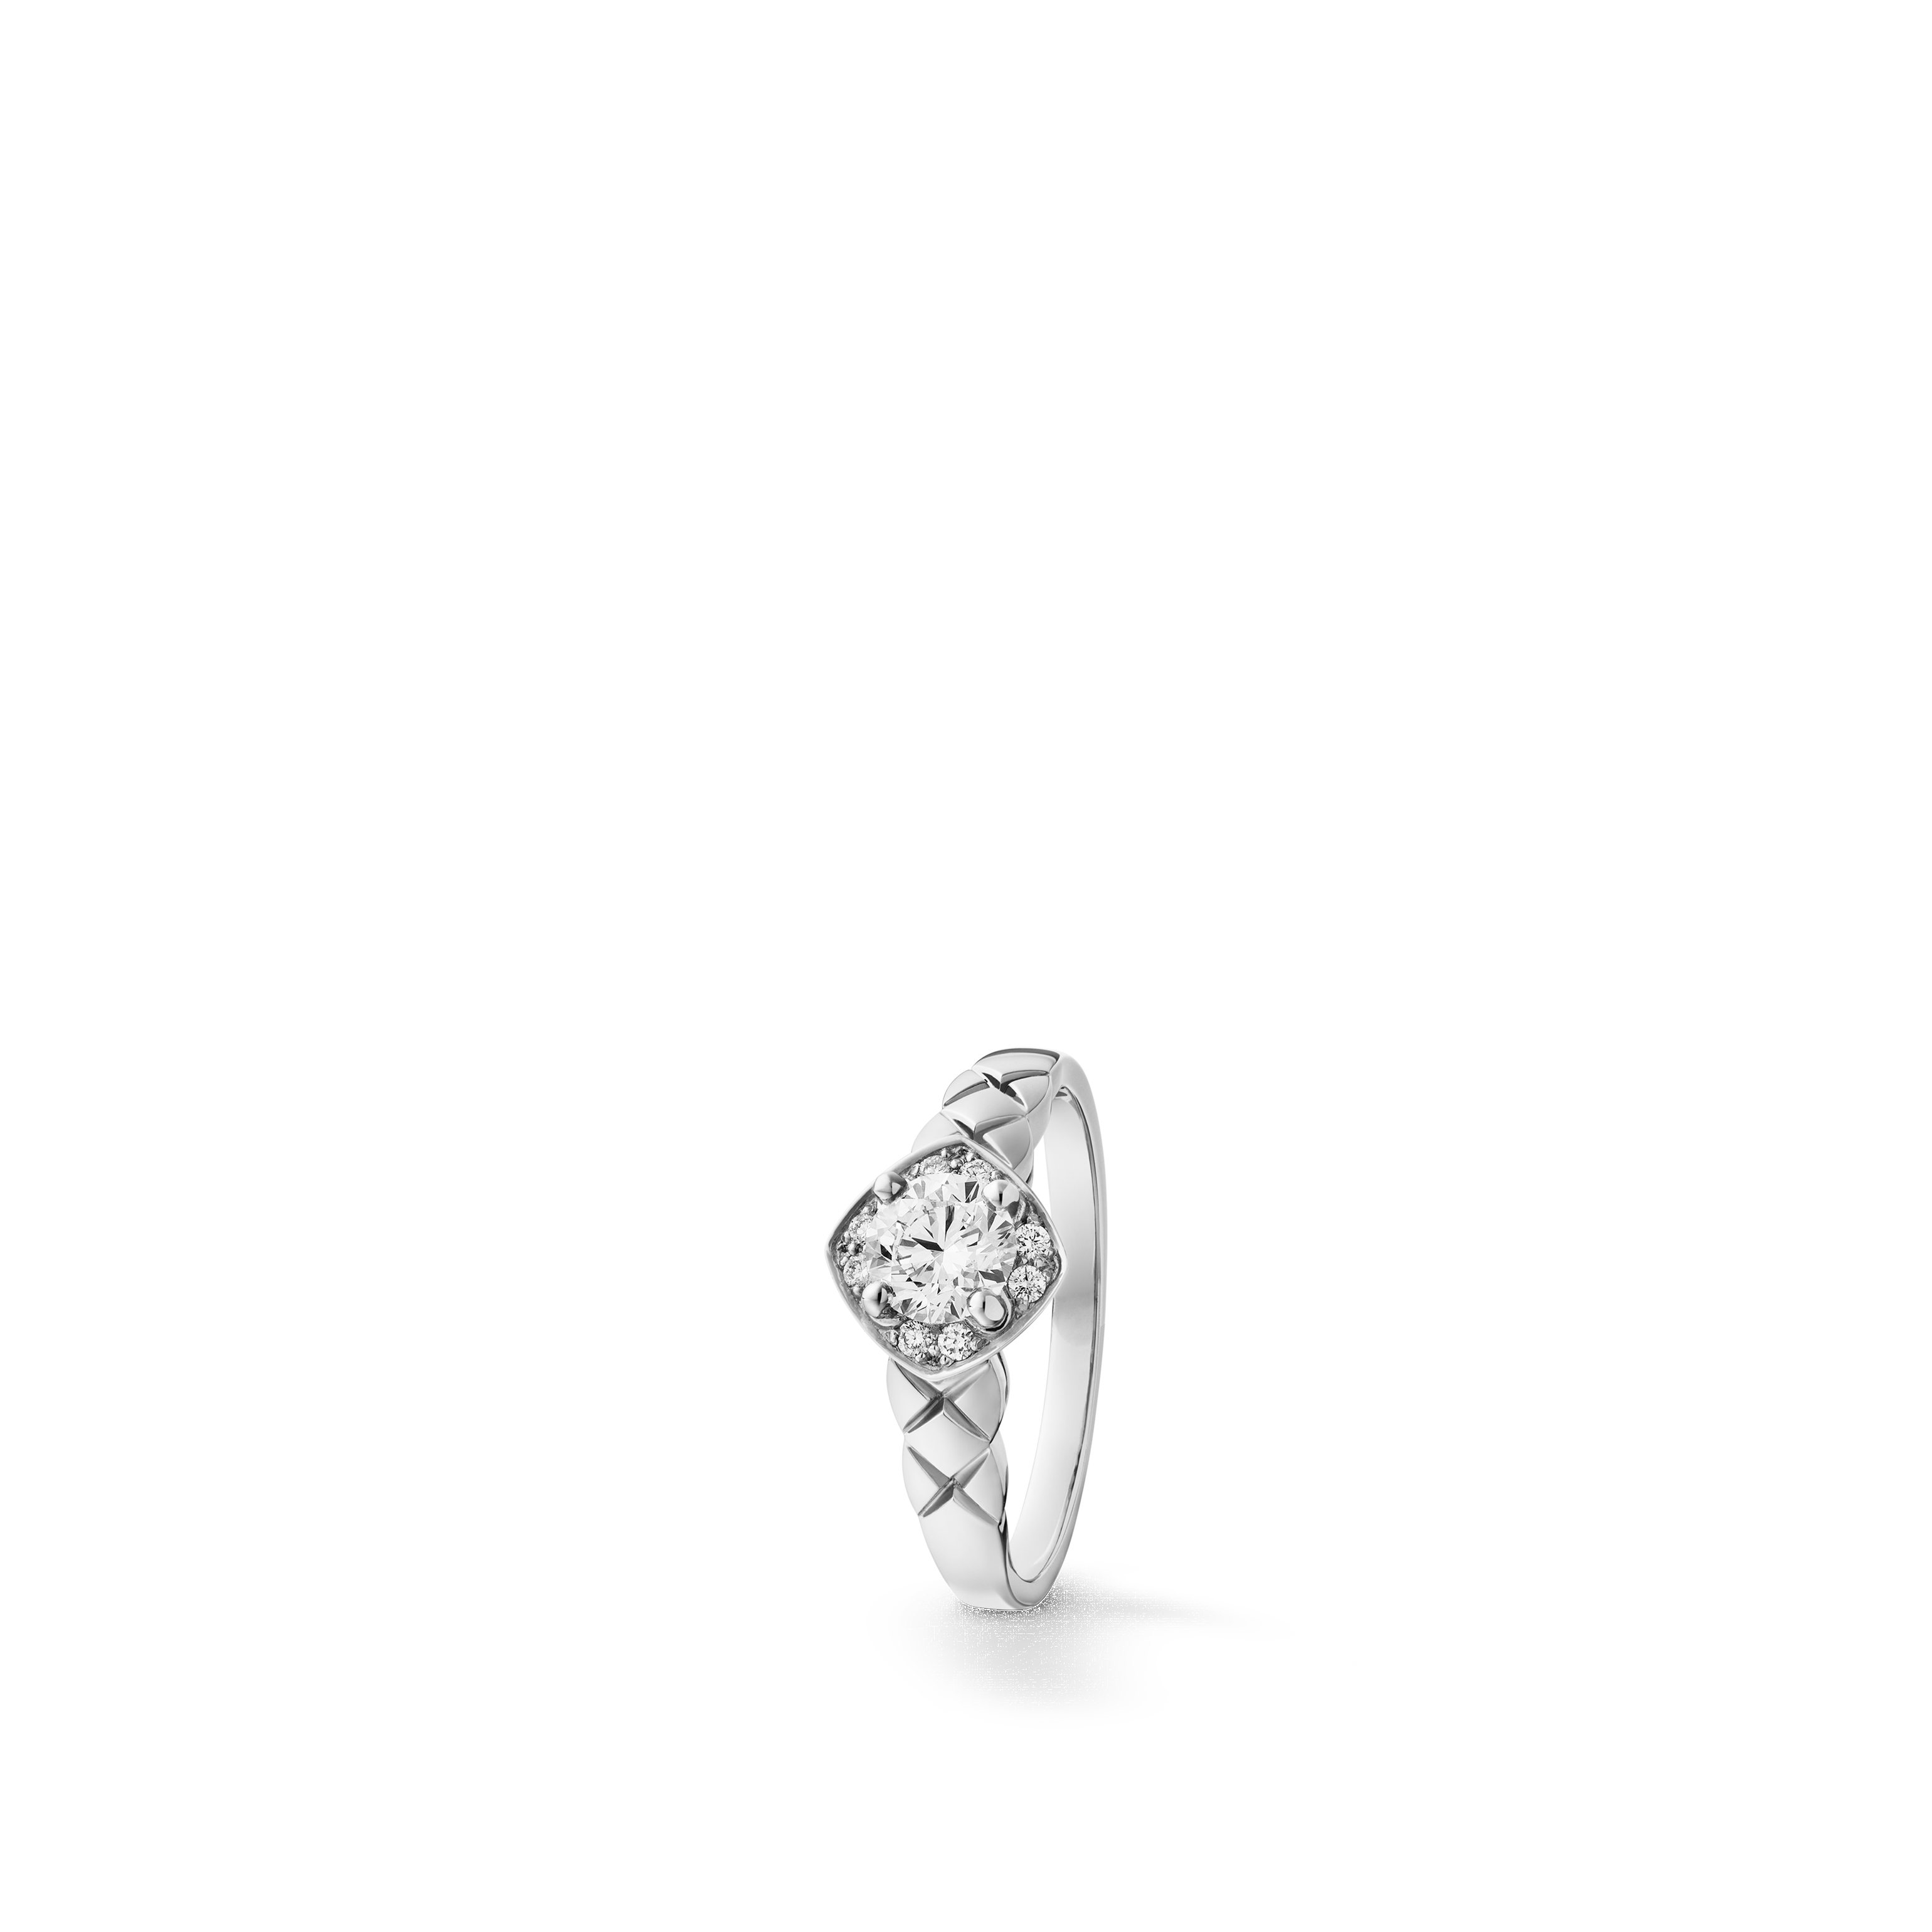 Coco Crush solitaire ring - Quilted motif, platinum, center diamond, diamonds - CHANEL - Default view - see standard sized version